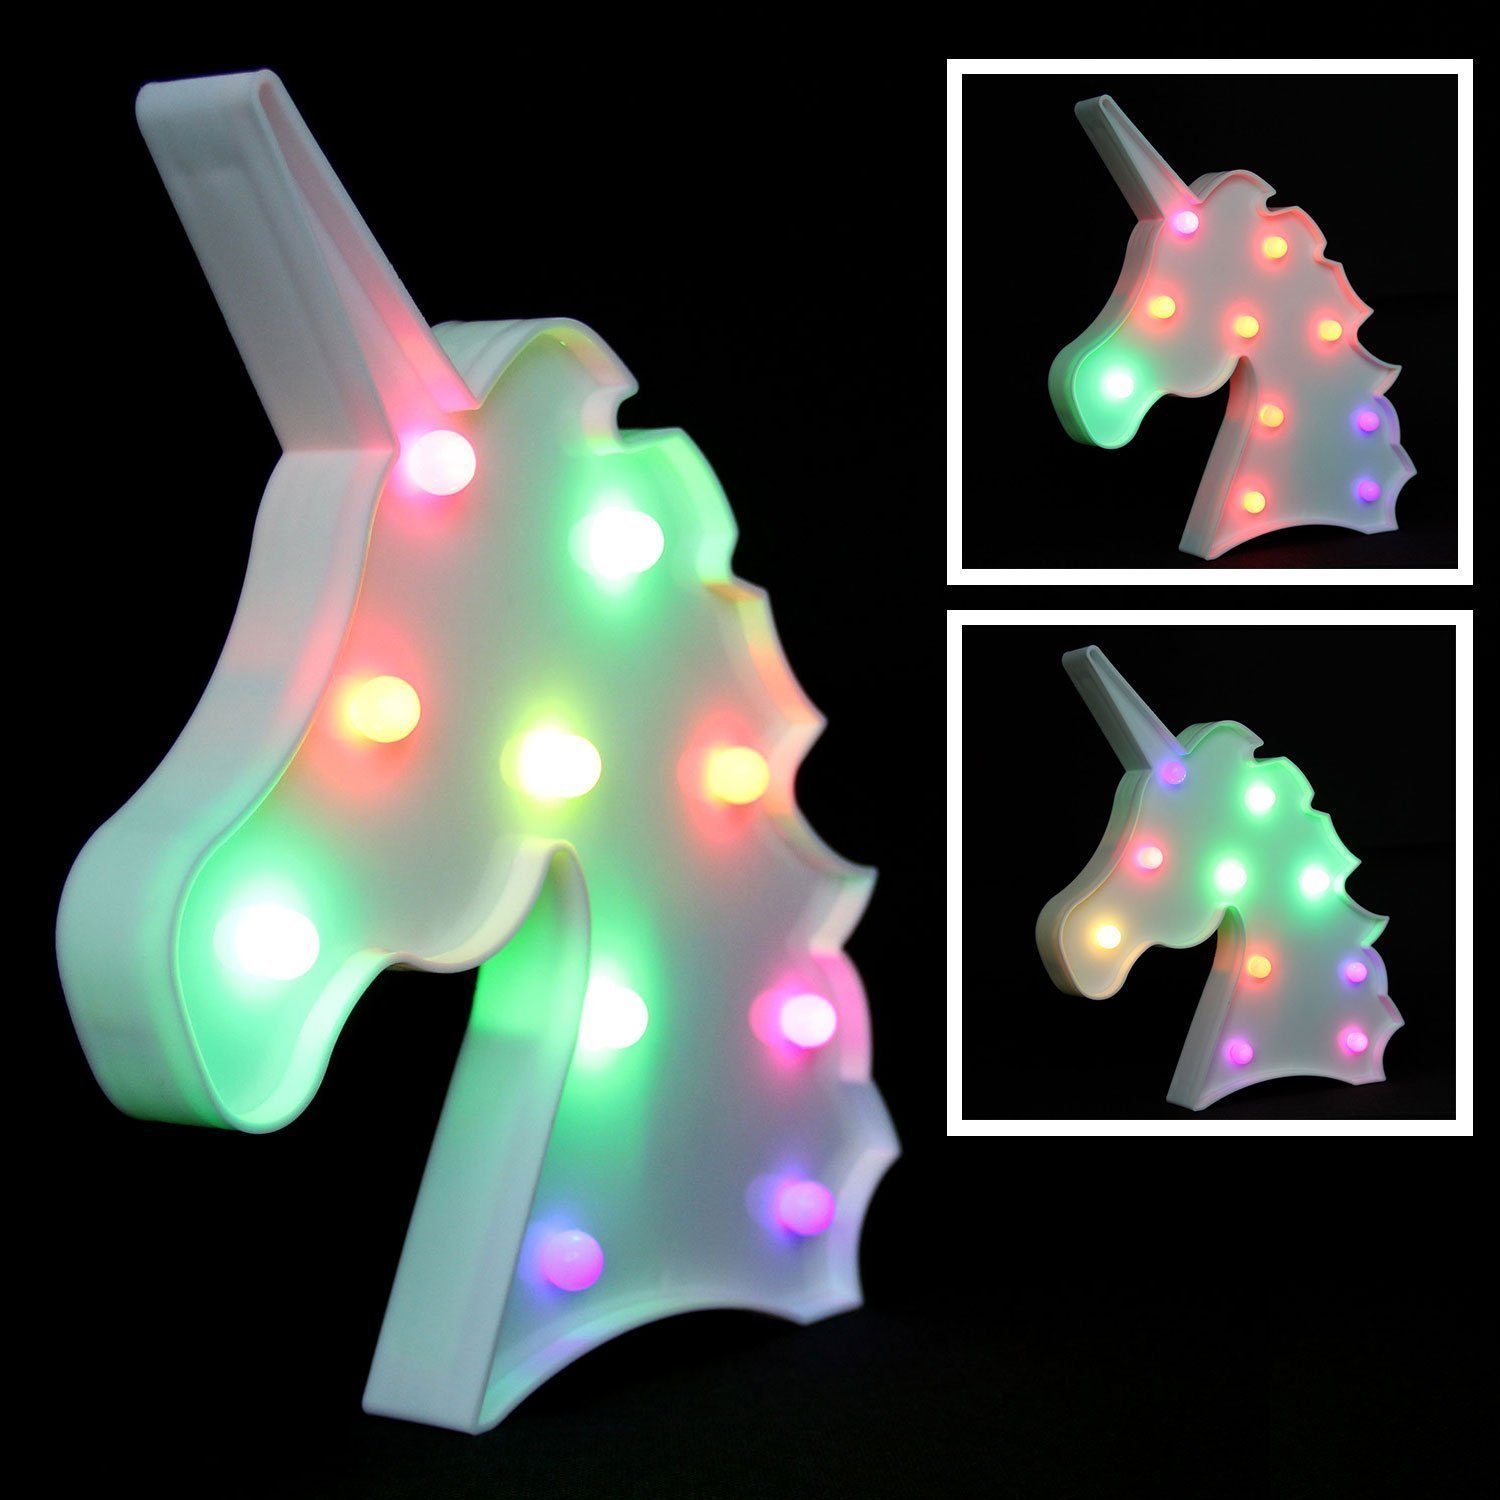 Unicorn Light Unicorn Party Supplies Kids Unicorn Colorful Unicorn Lamp Battery Operated Unicorn Table Decorations for Wall Decoration,Kids' Room,Living Room,Bedroom (Colorful Unicorn) by KiBlue (Image #8)